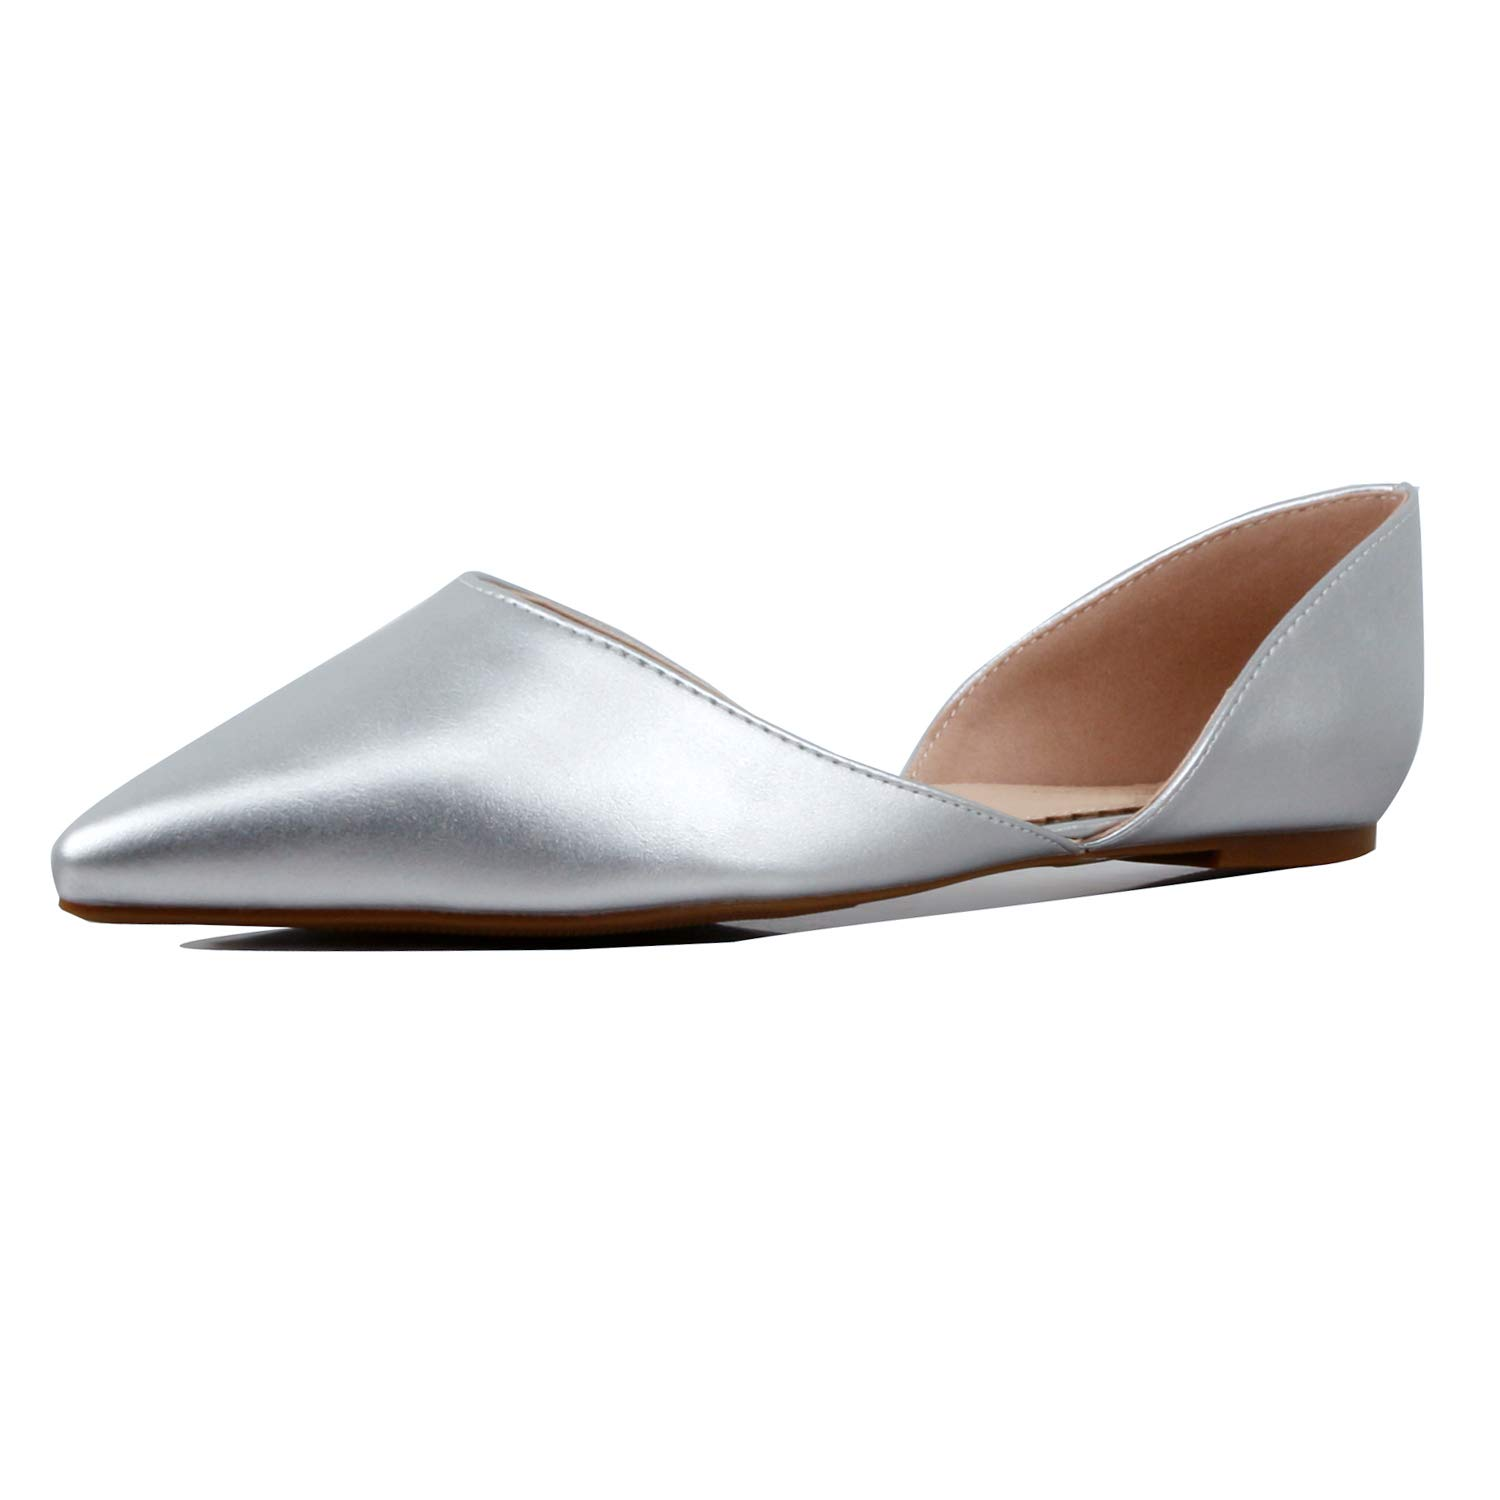 01 Silver Pu Guilty Heart Womens D'Orsay Almond Pointed Toe Slip On Casual Flats